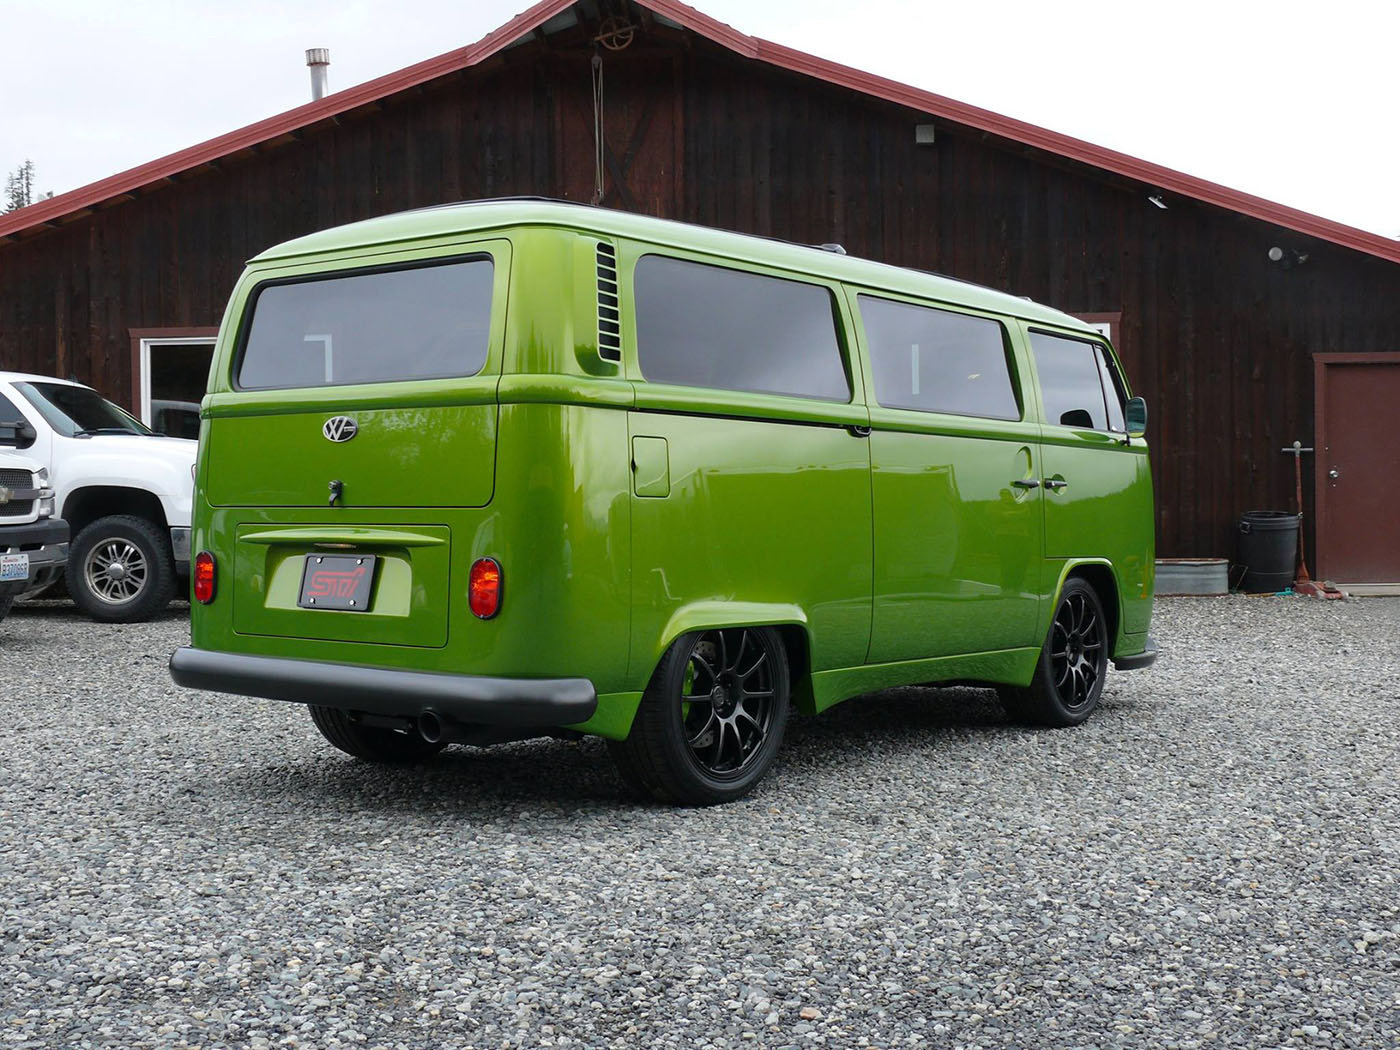 1972 Vw Bus With A Subaru Ej25 Engine Swap Depot Air Cooled Volkswagen Super Beetle Wiring Harnesses From Mid